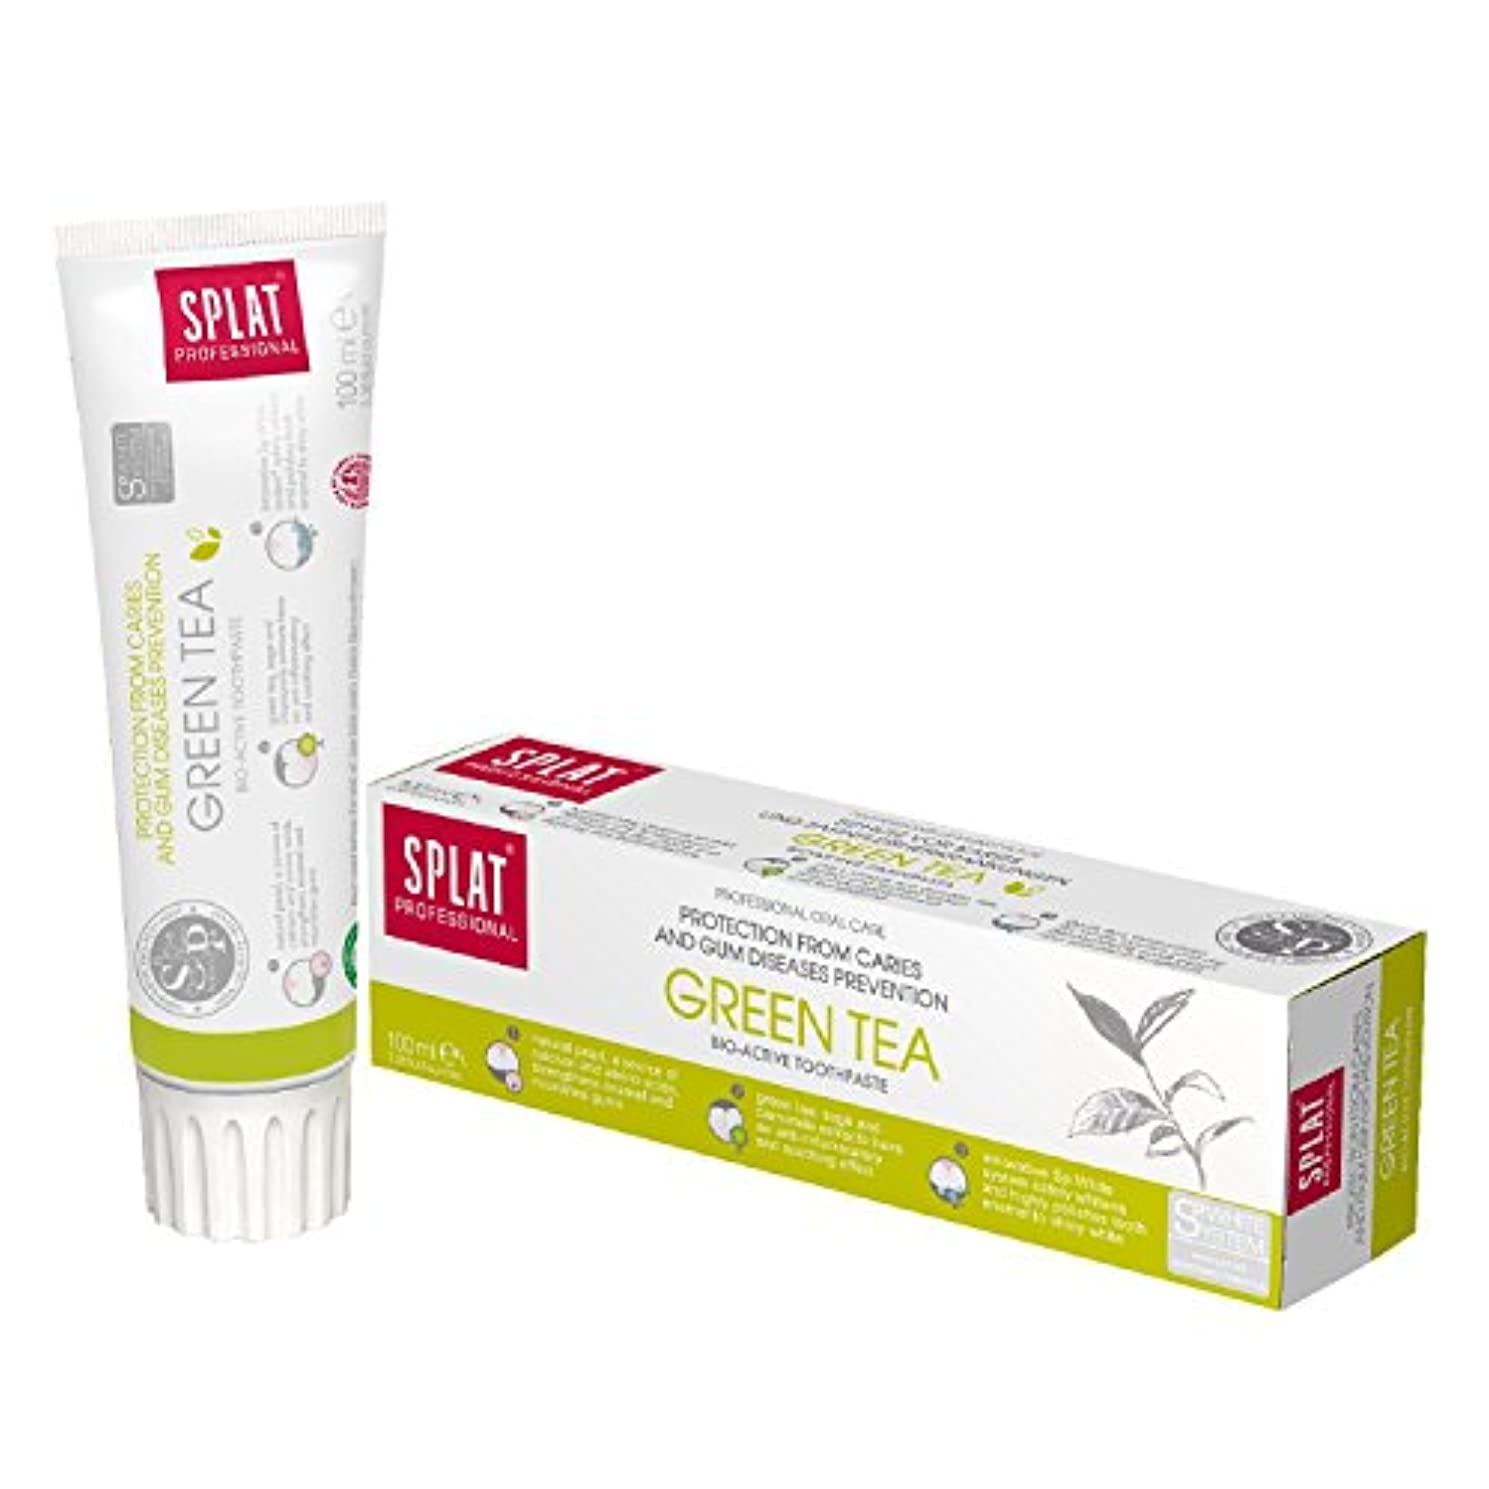 ボルト息子くしゃくしゃToothpaste Splat Professional 100ml (Green tea)